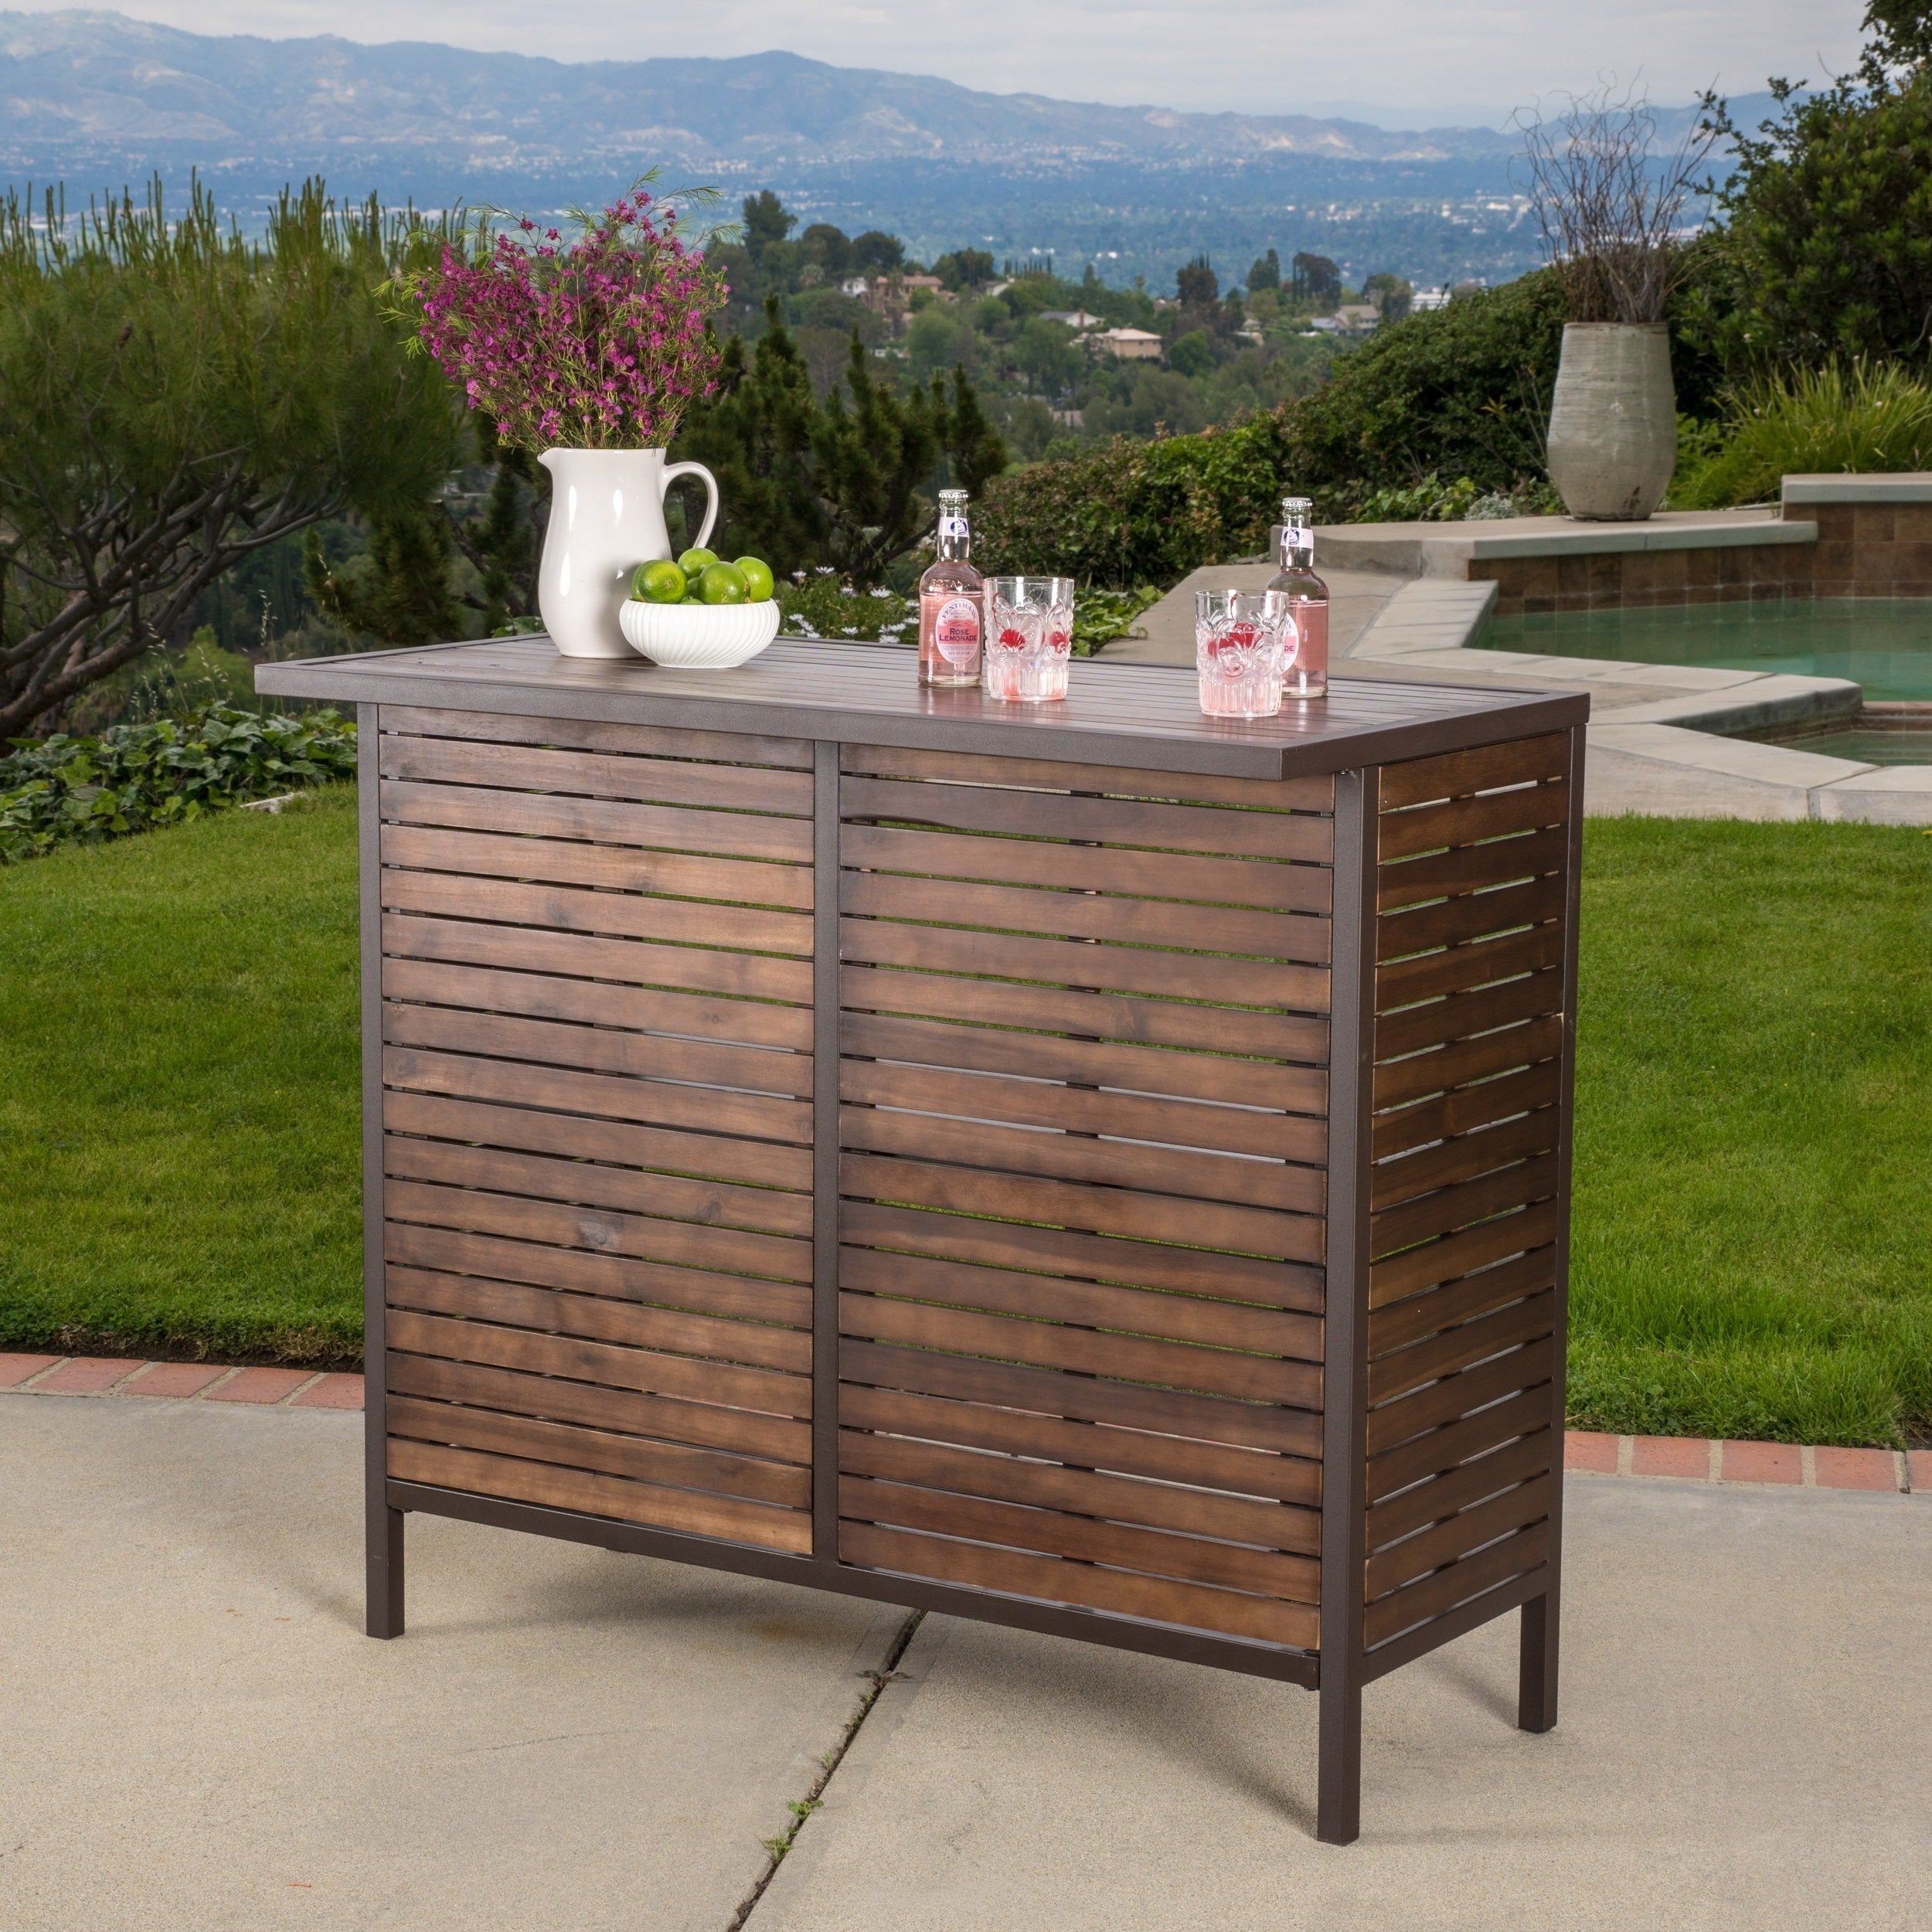 Shop Milos Outdoor Acacia Wood Bar Table By Christopher Knight Home Overstock 11414322